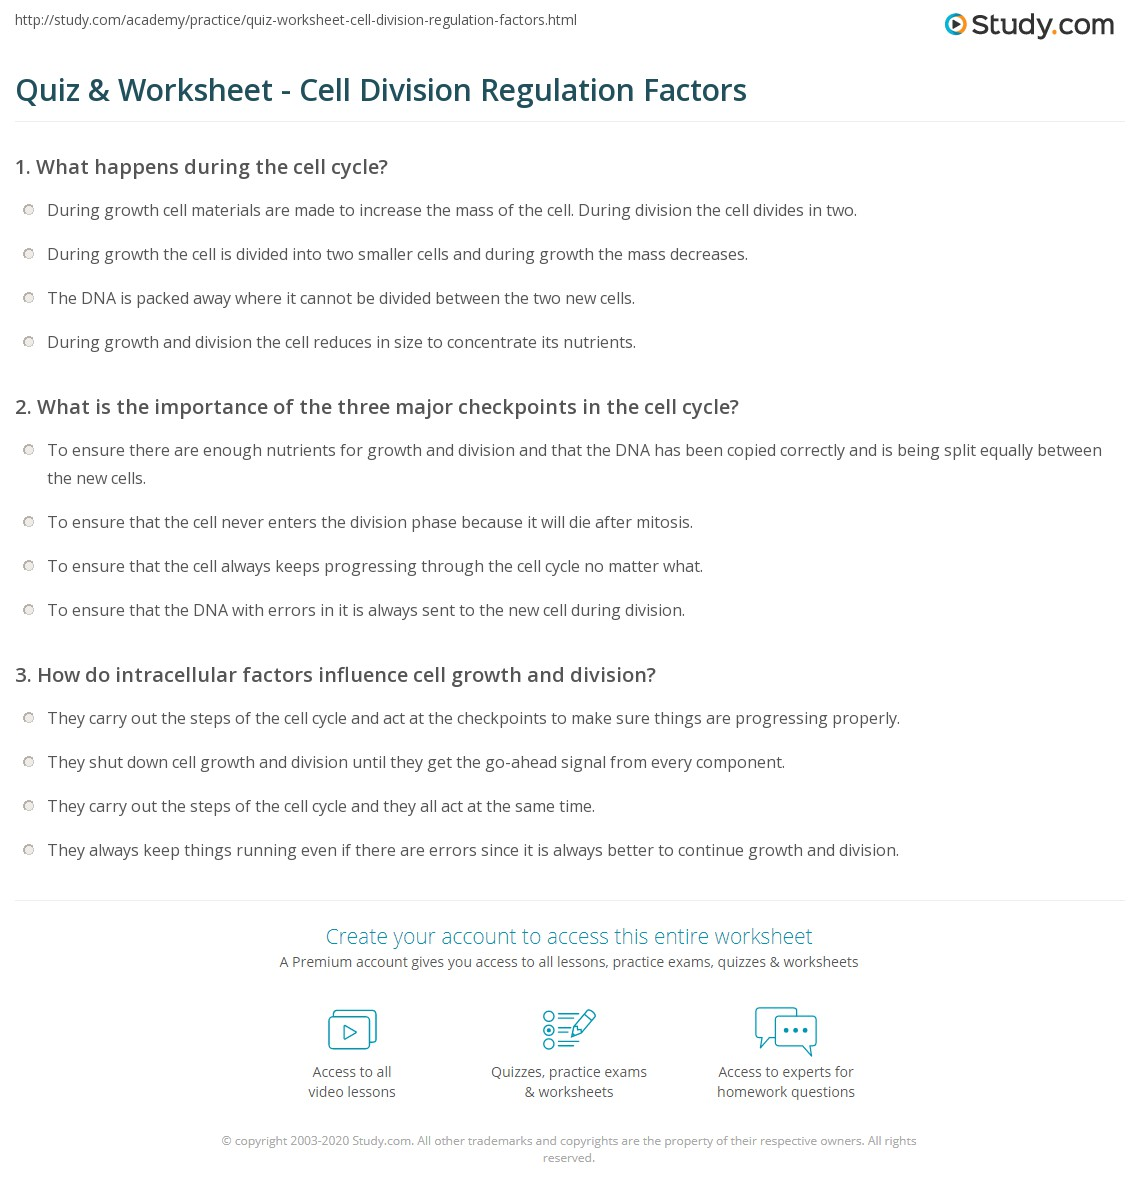 Worksheet Cell Division Worksheet Answers quiz worksheet cell division regulation factors study com print internal external that regulate worksheet